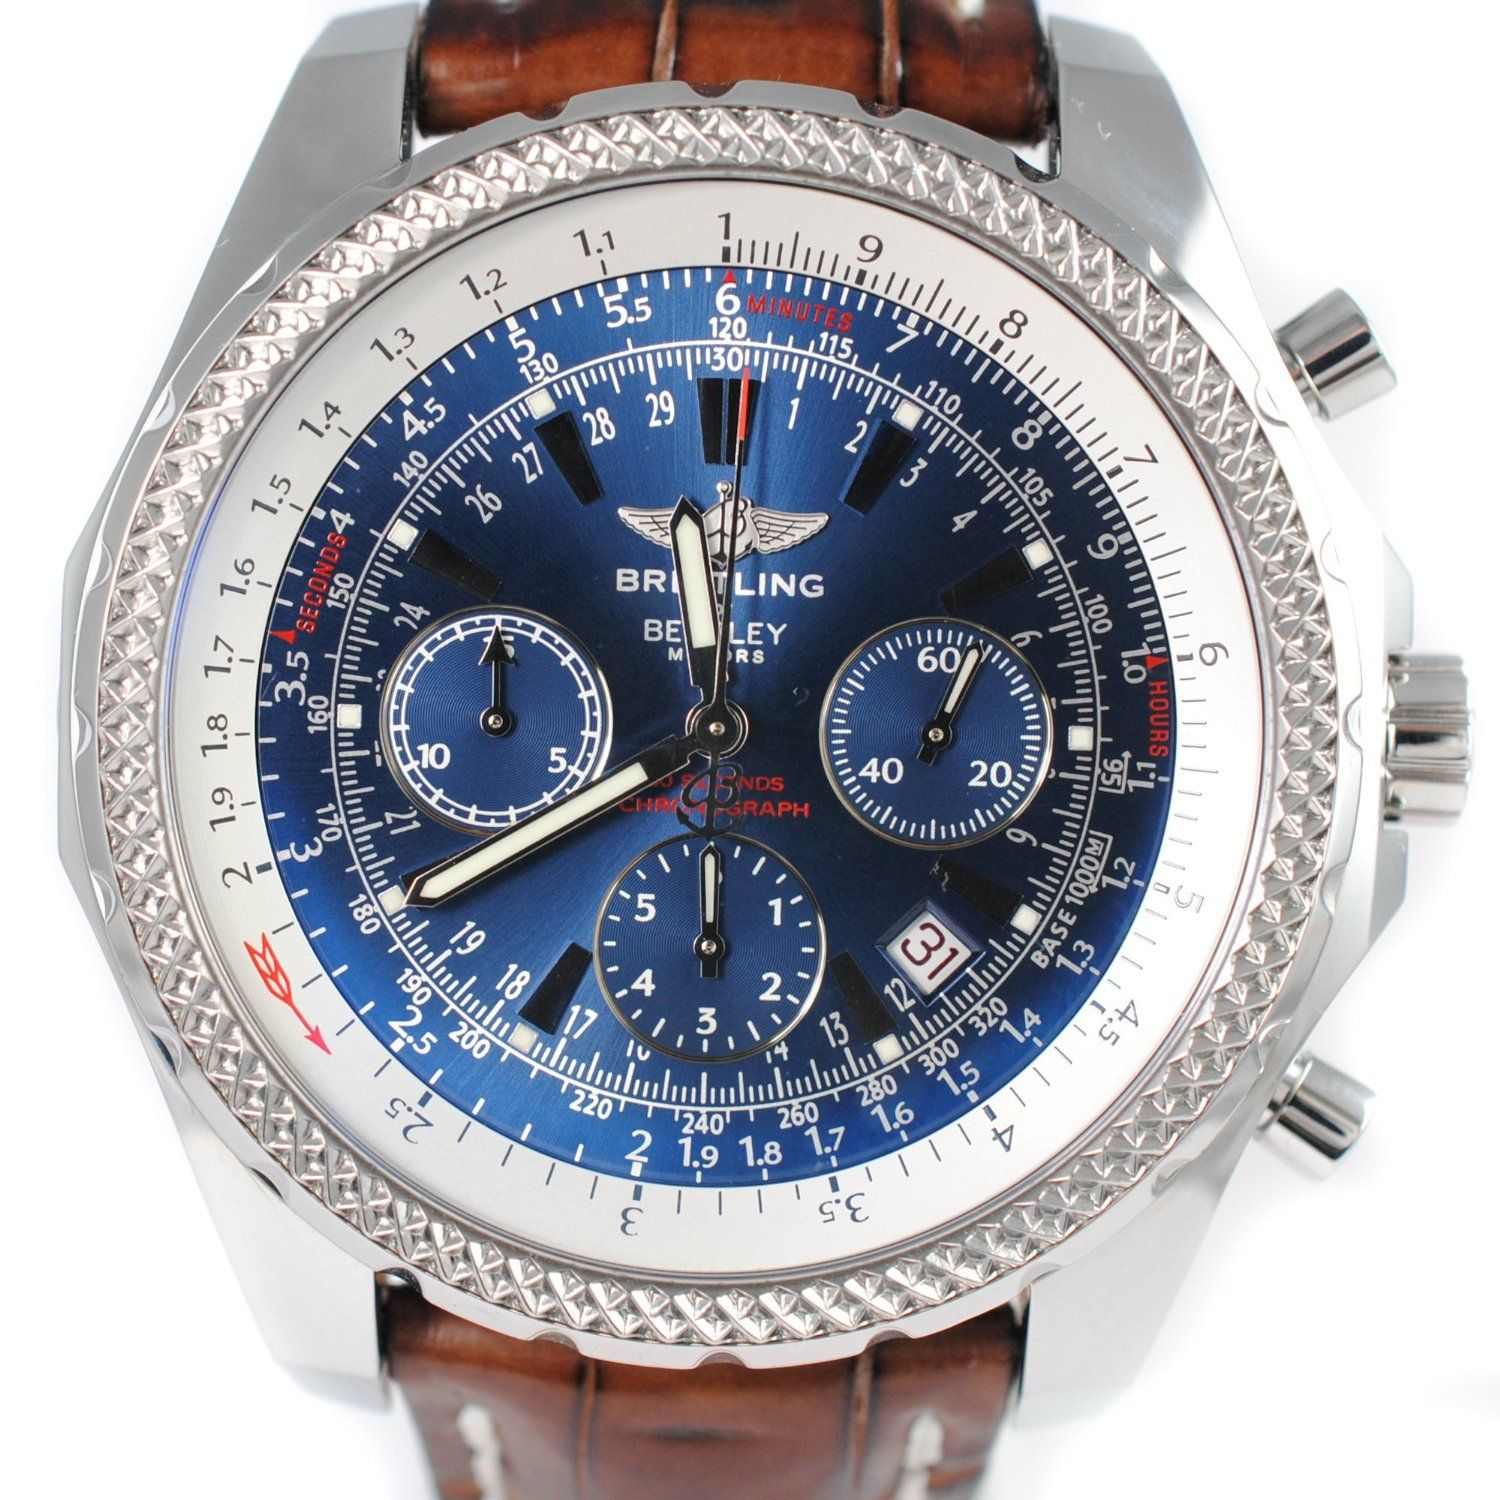 on from special trusted bentley sale xxl htm ed diamond seller watch bezel a motors breitling for